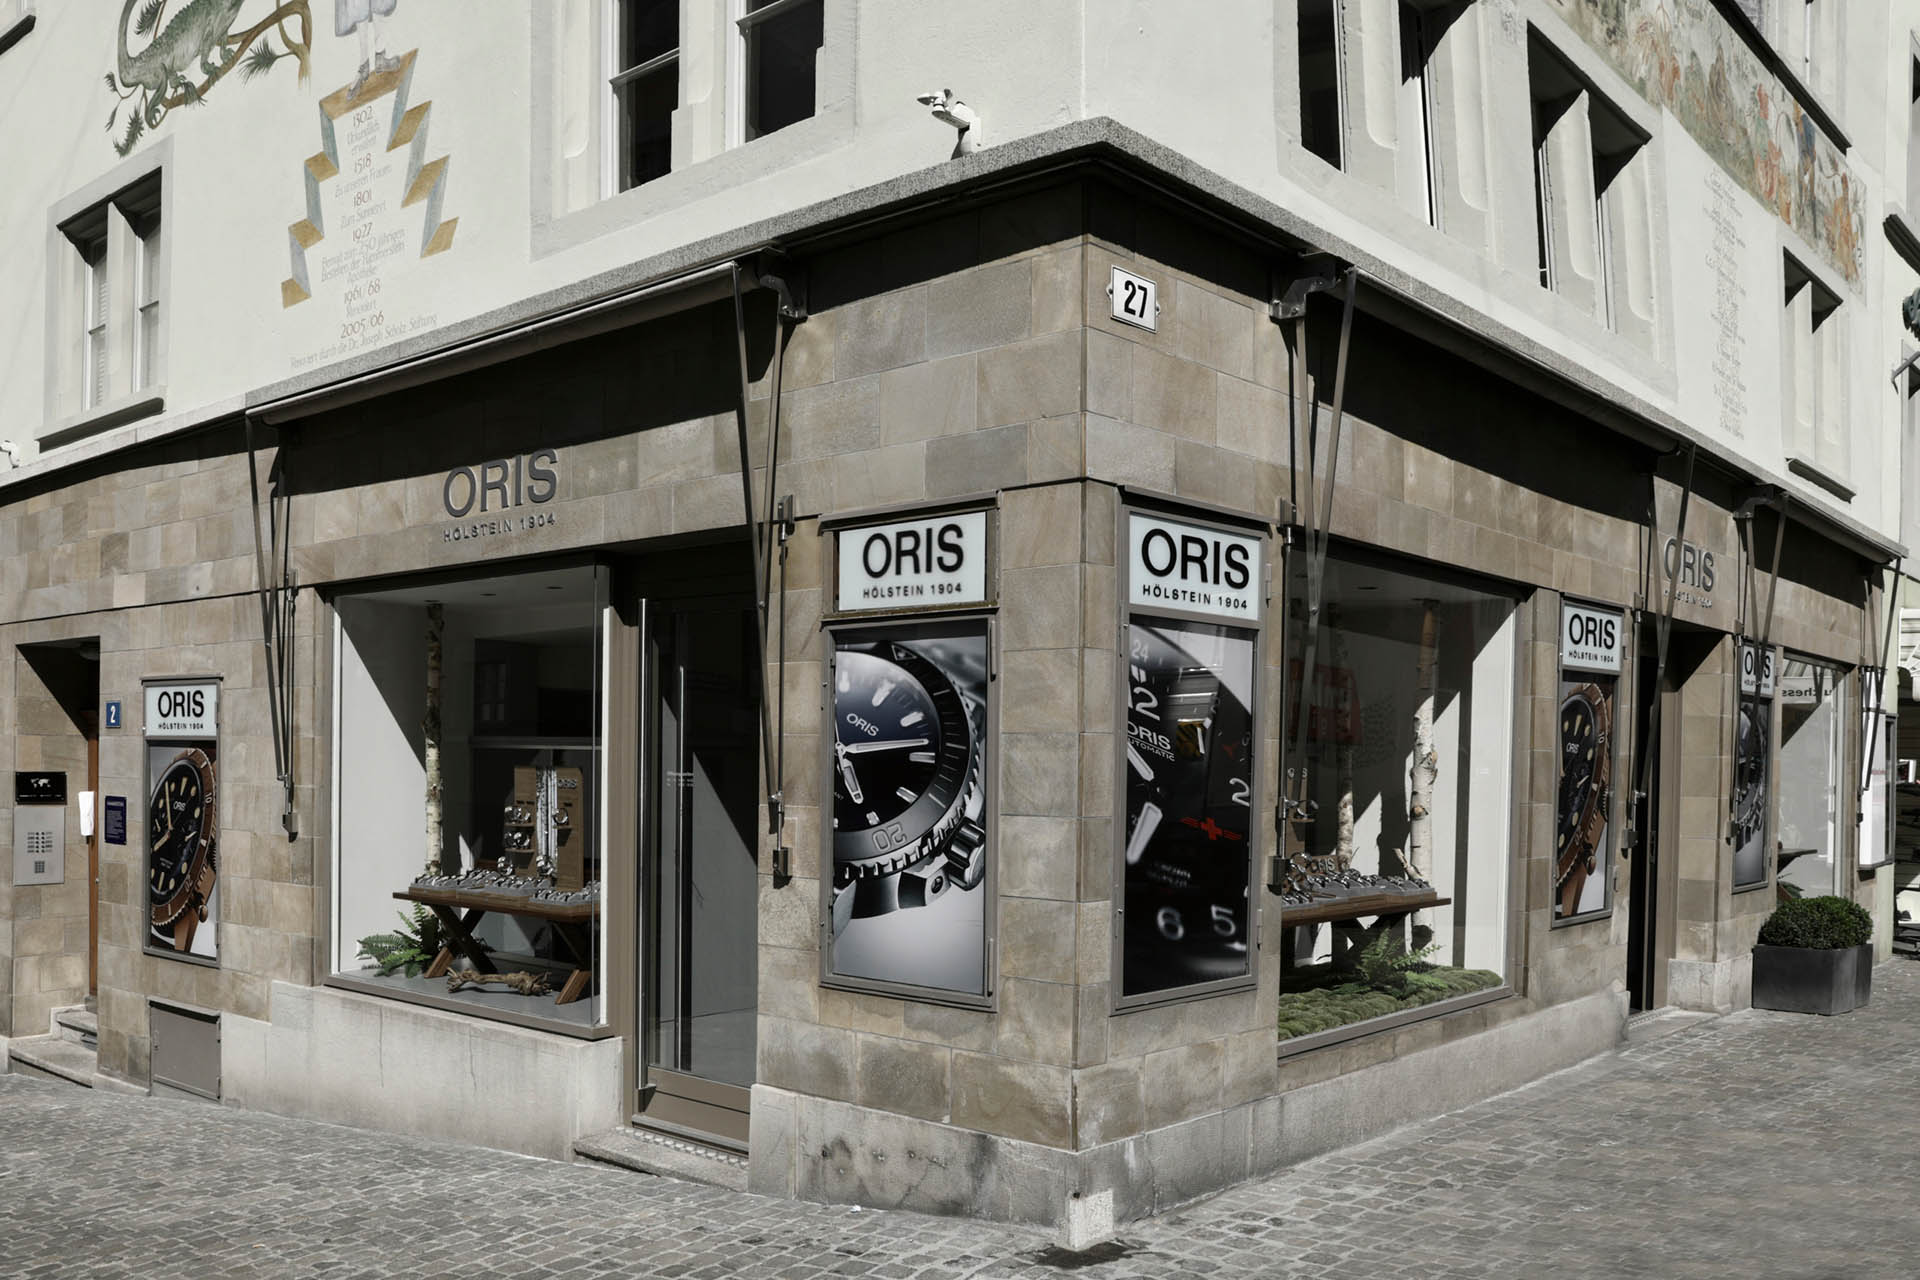 Oris-Boutique in Zürich